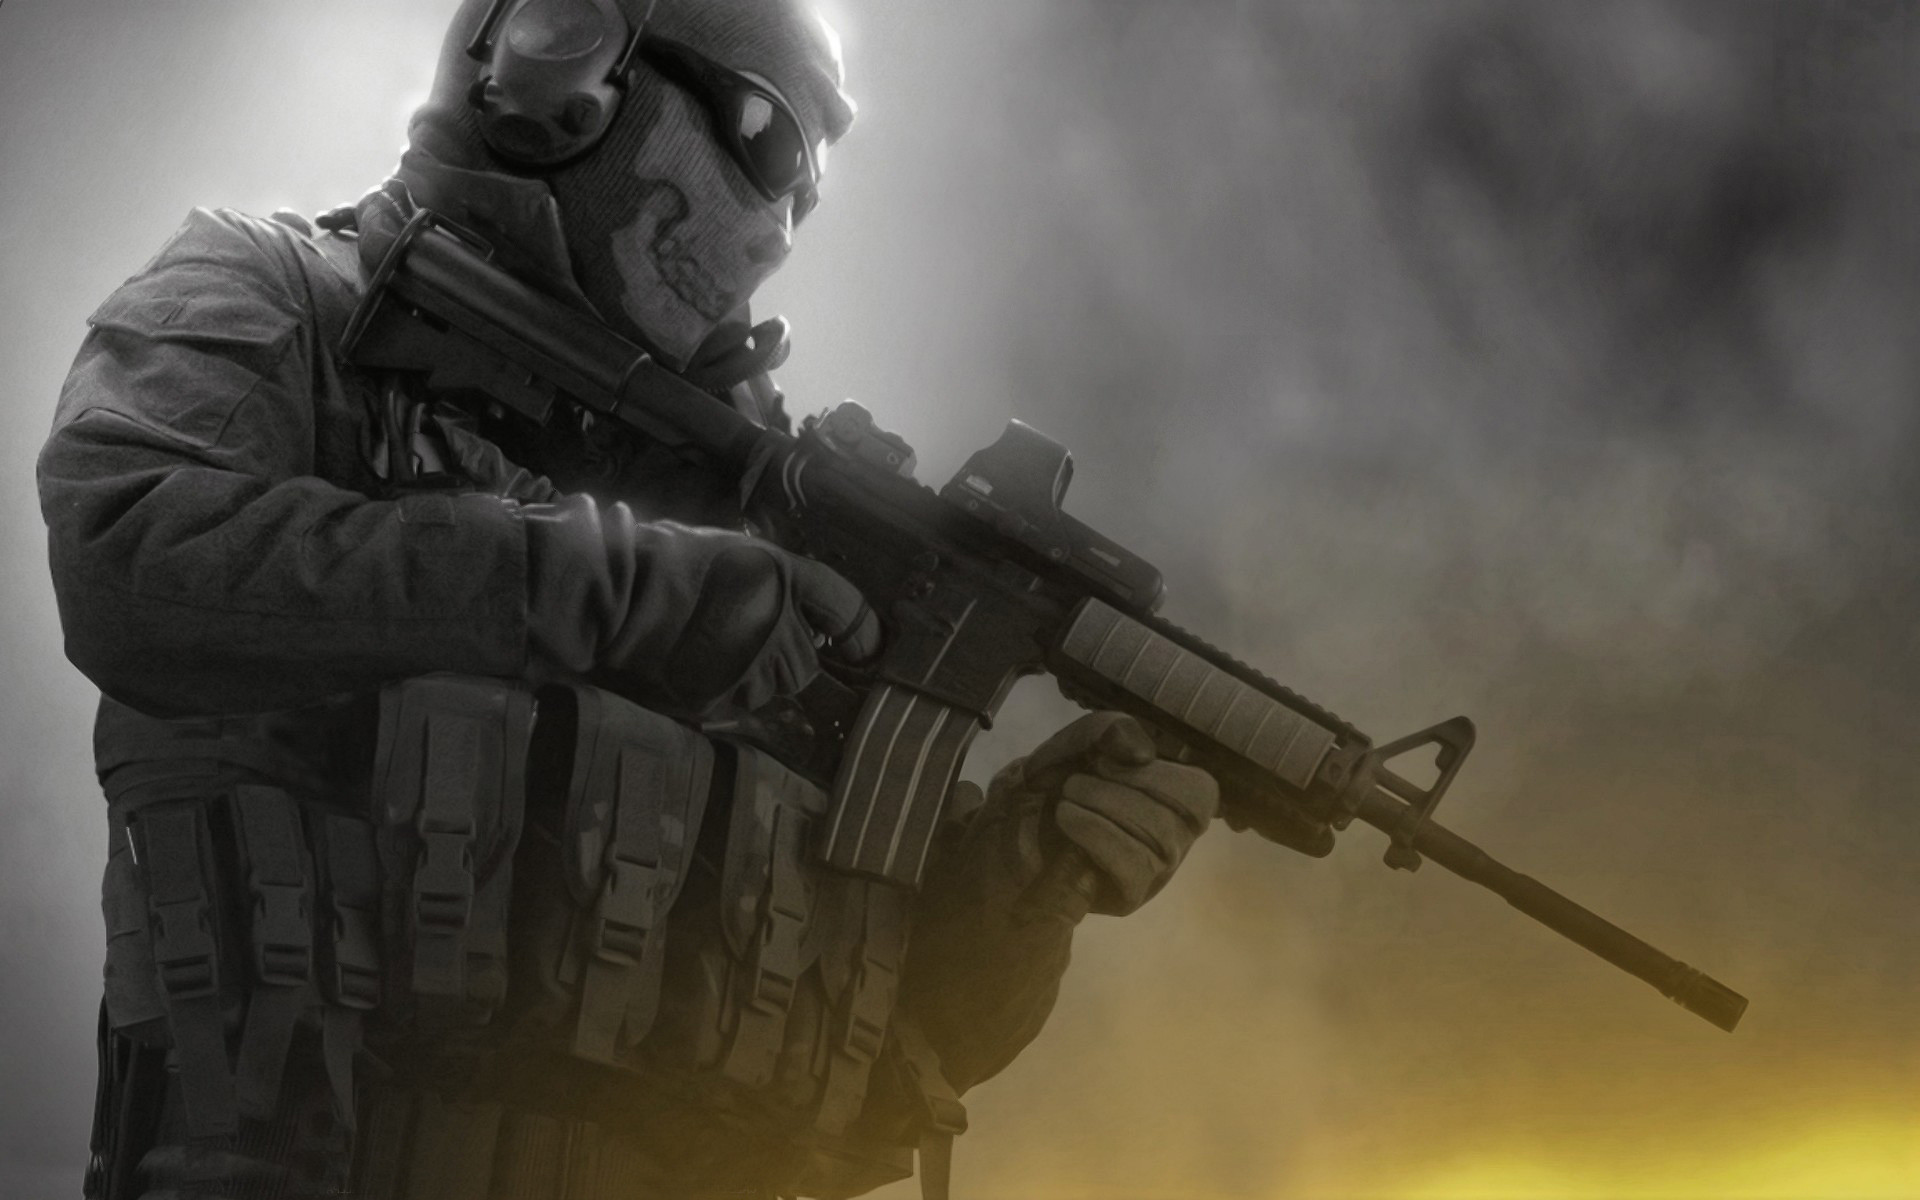 Call Of Duty: Modern Warfare 4 Reportedly Ditching Zombie Mode